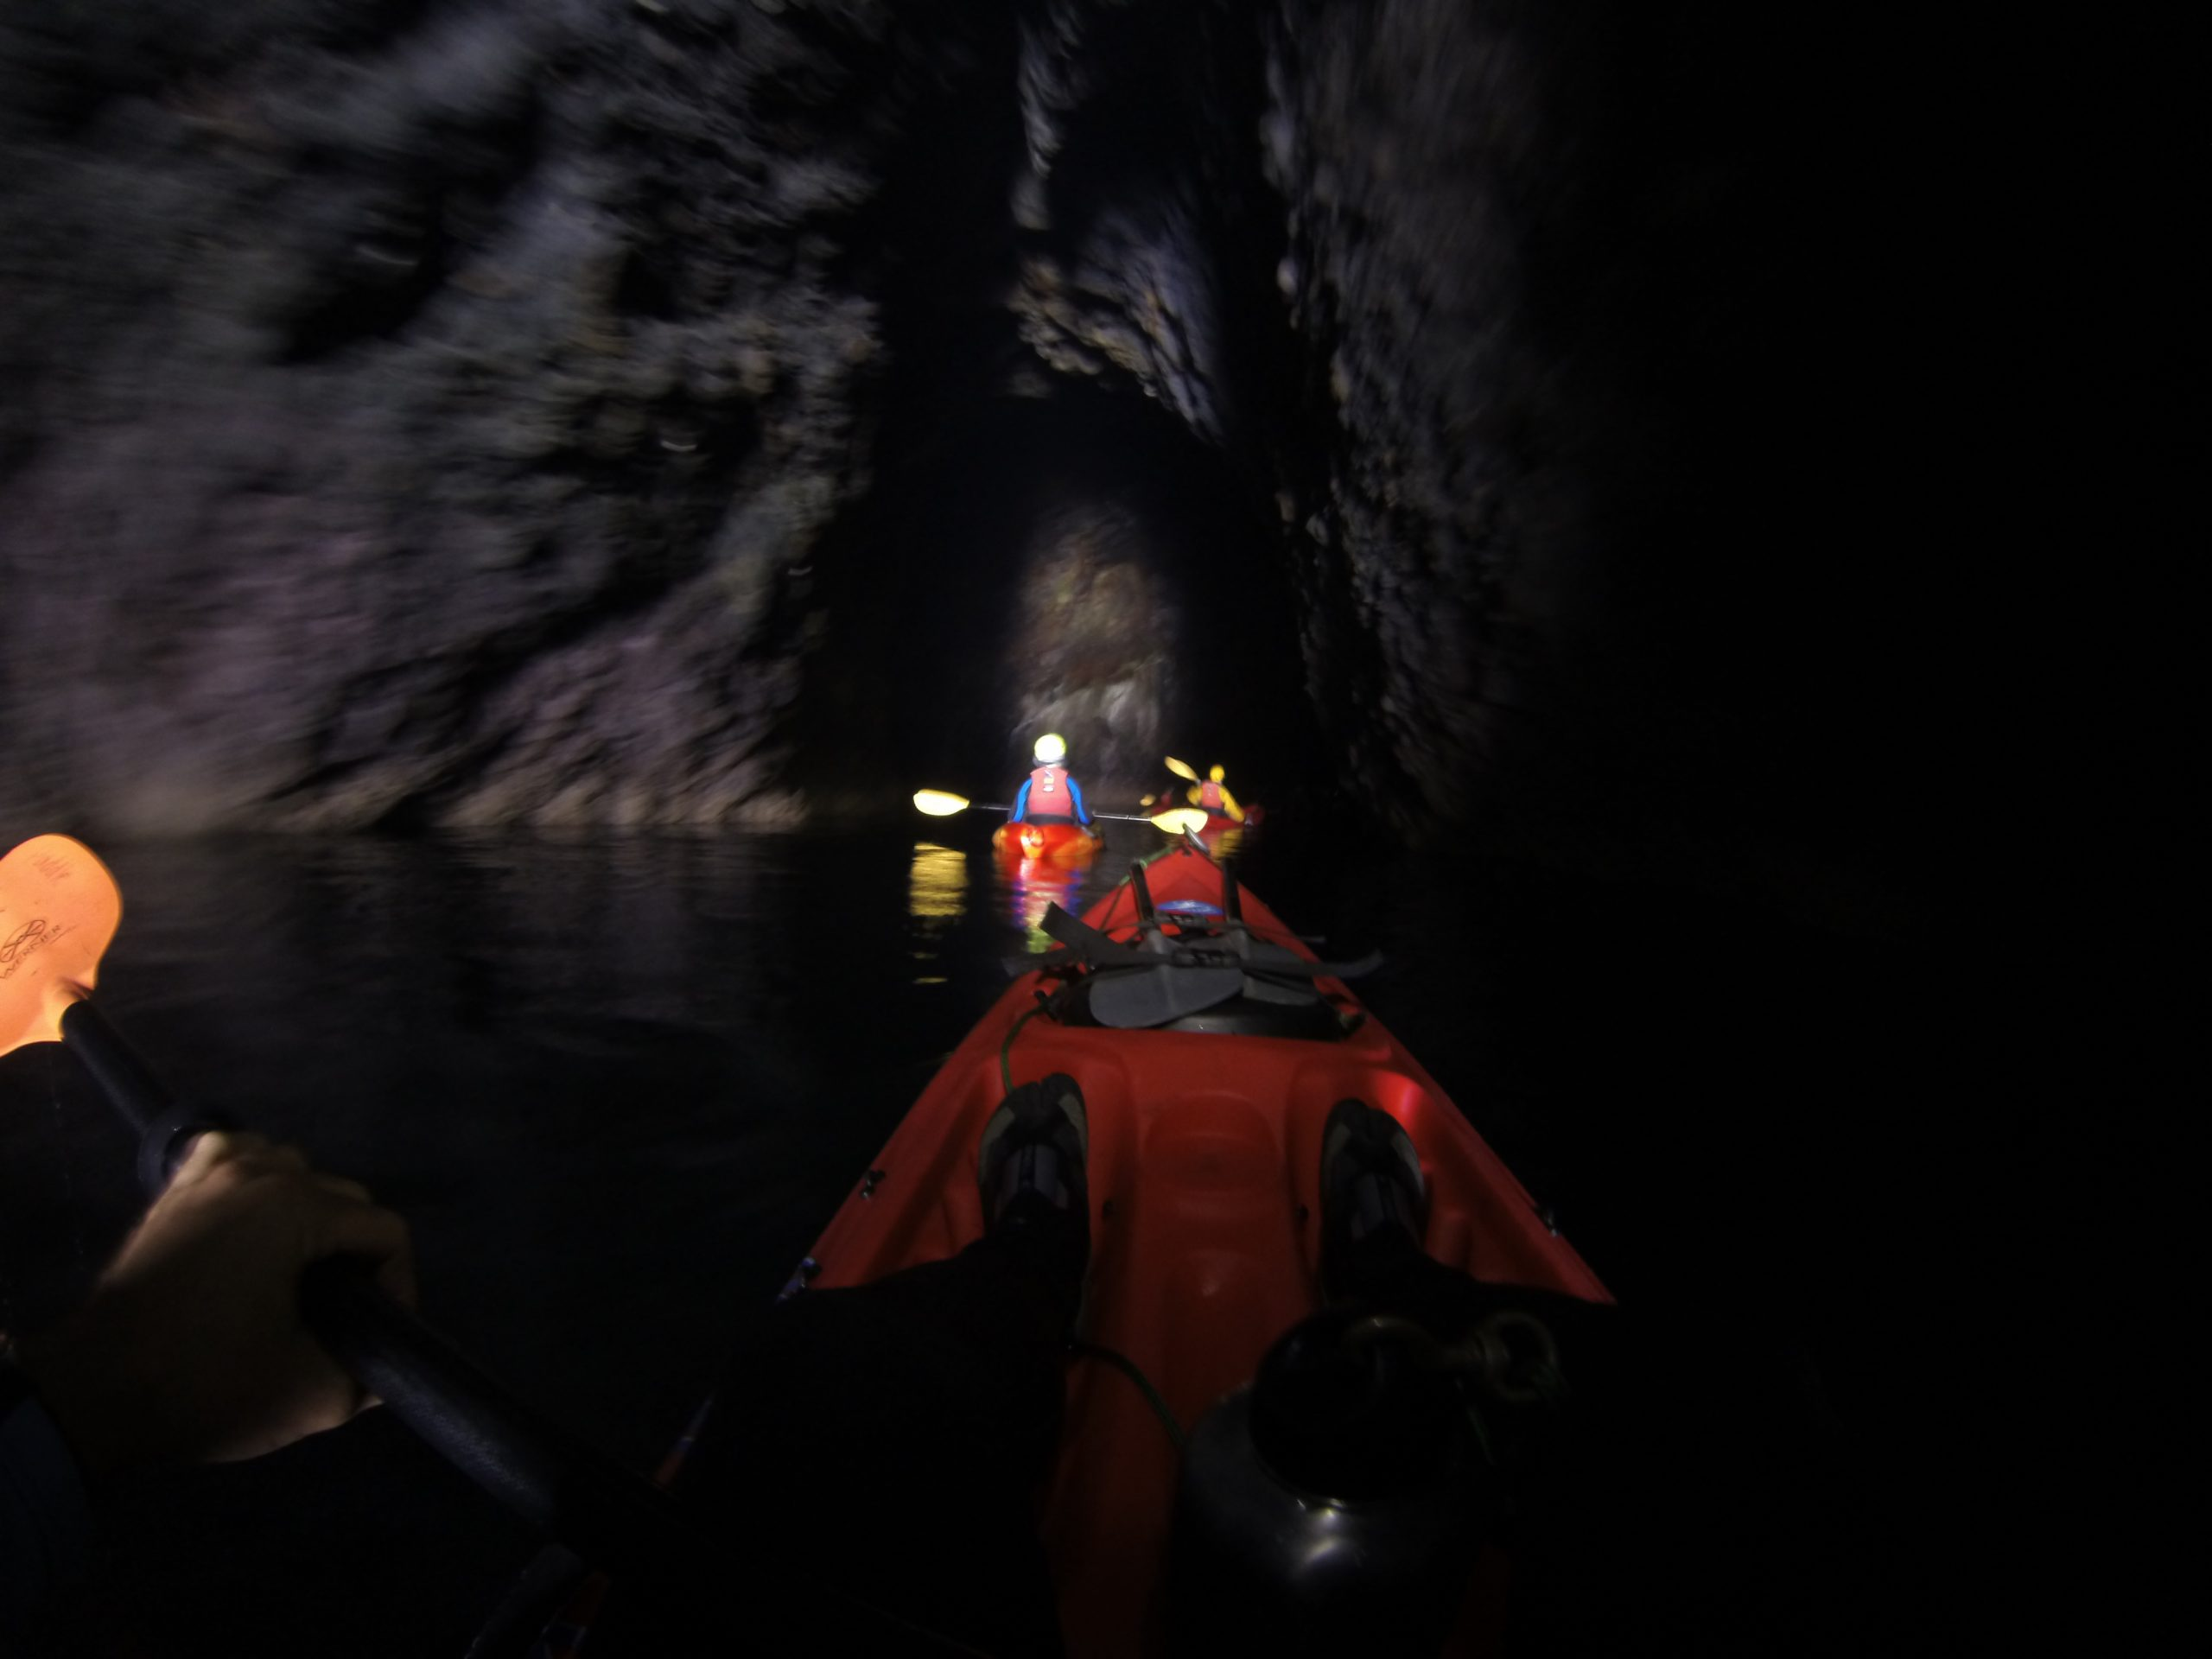 kayakers in a cave